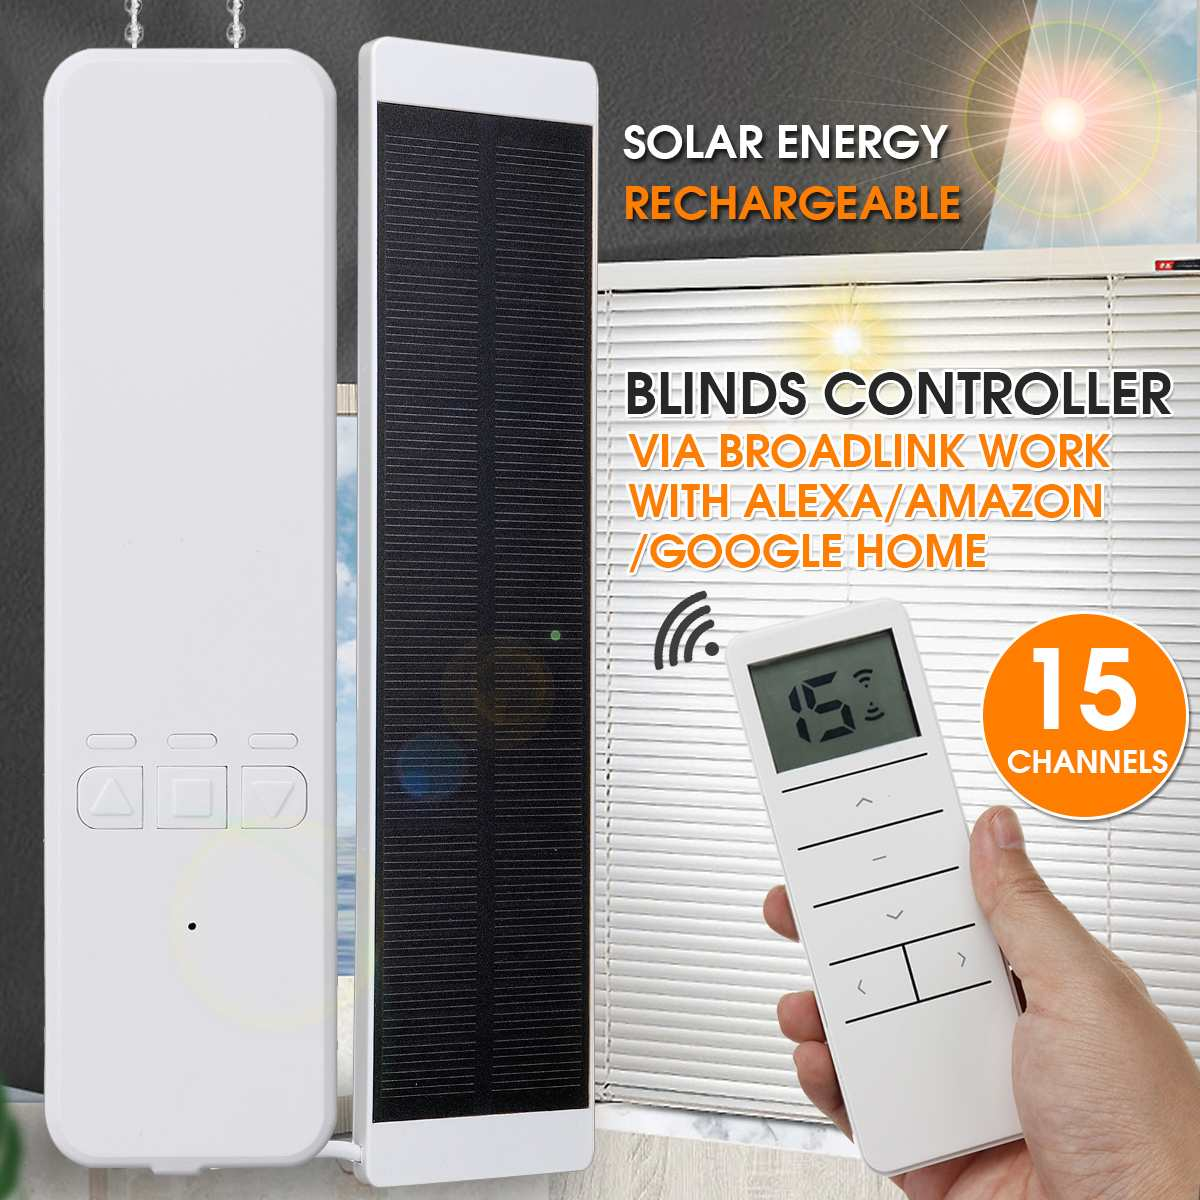 NEW Solar Charging Smart Home Motorized Chain Roller Blinds Automation Kit Control With Remote And Control Via Alexa/Google